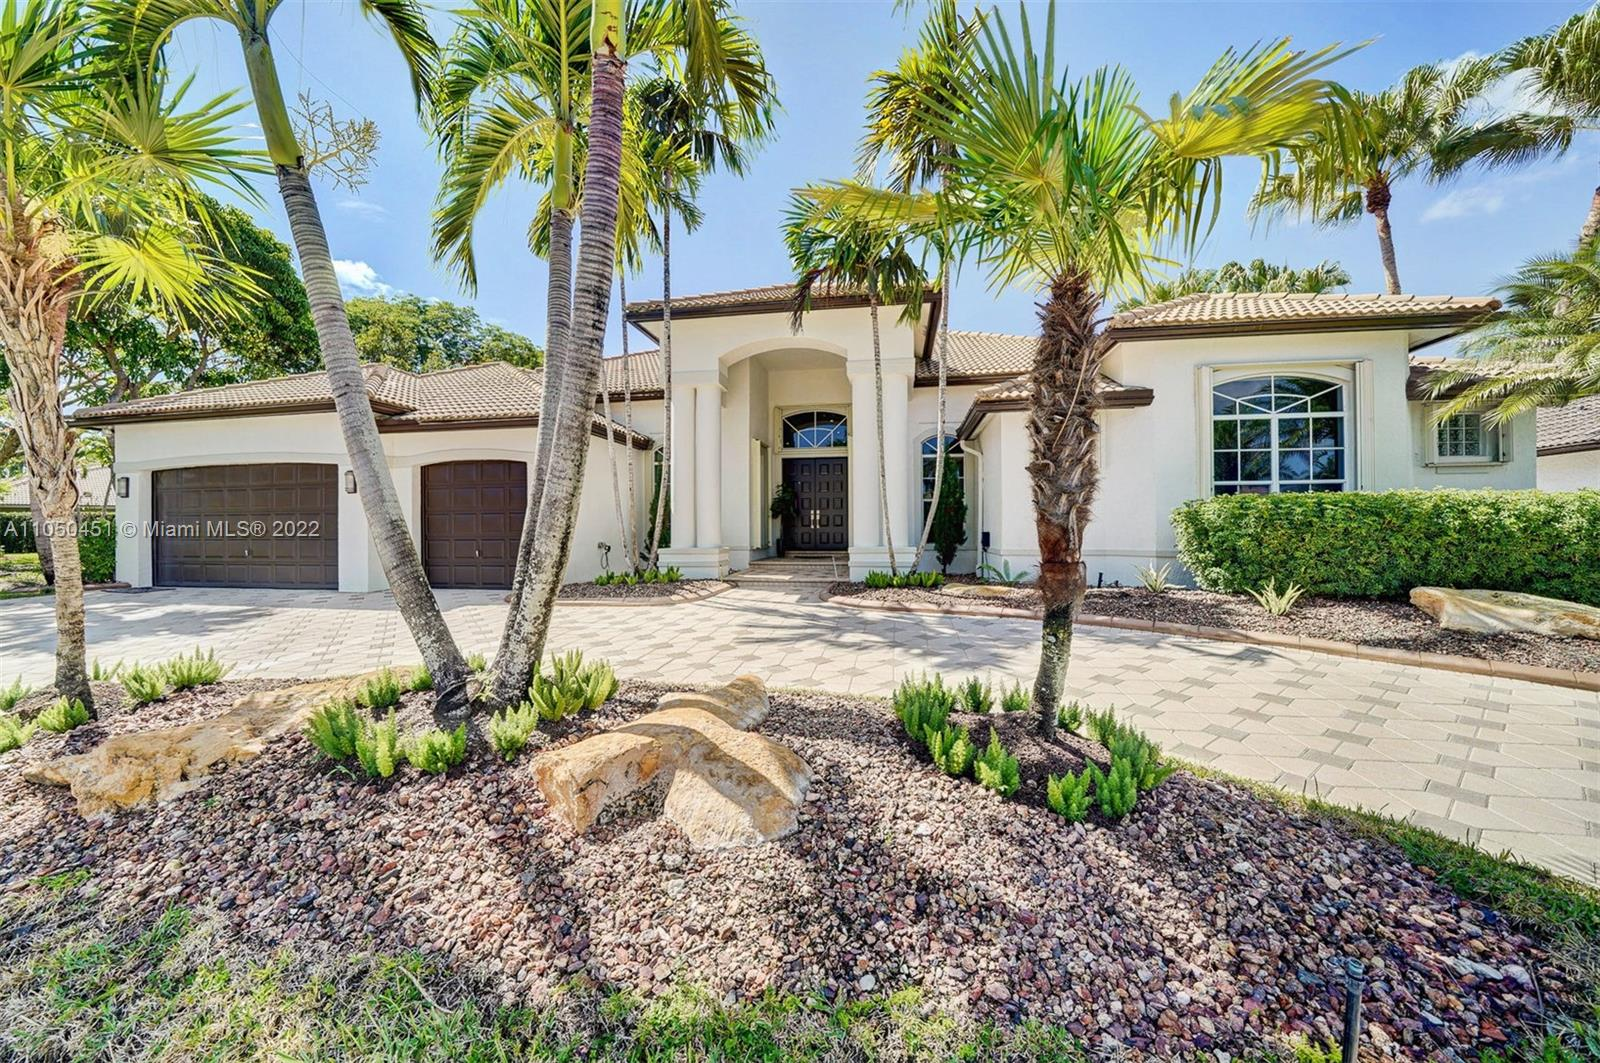 """This pristine, COMPLETELY REMODELED IN 2018, 1-story modern/contemporary home is perfectly set on a 16,504 SF lot. Situated in the prestigious Weston Hills CC """"POINCIANA"""" featuring 5BDS/5BATHS/Den/Office/Large family room perfect to create 2 ambiances, 3-car garage and a circular driveway. The master suite features wood floors, a sitting area + an office, and 2 walk-in closets. The kitchen features stainless steel appliances, white siltstone countertop & glossy cabinetry. The spacious breakfast area looks out to a serenity lake and a pool. All bathrooms feature new tiles, glass shower doors, and new vanities. The high ceilings give you a sense of space. Smooth textured walls, marble floors. Led lighting system, 3 AC units 2019,  accordion shutters throughout & Custom Closets and cabinetry."""